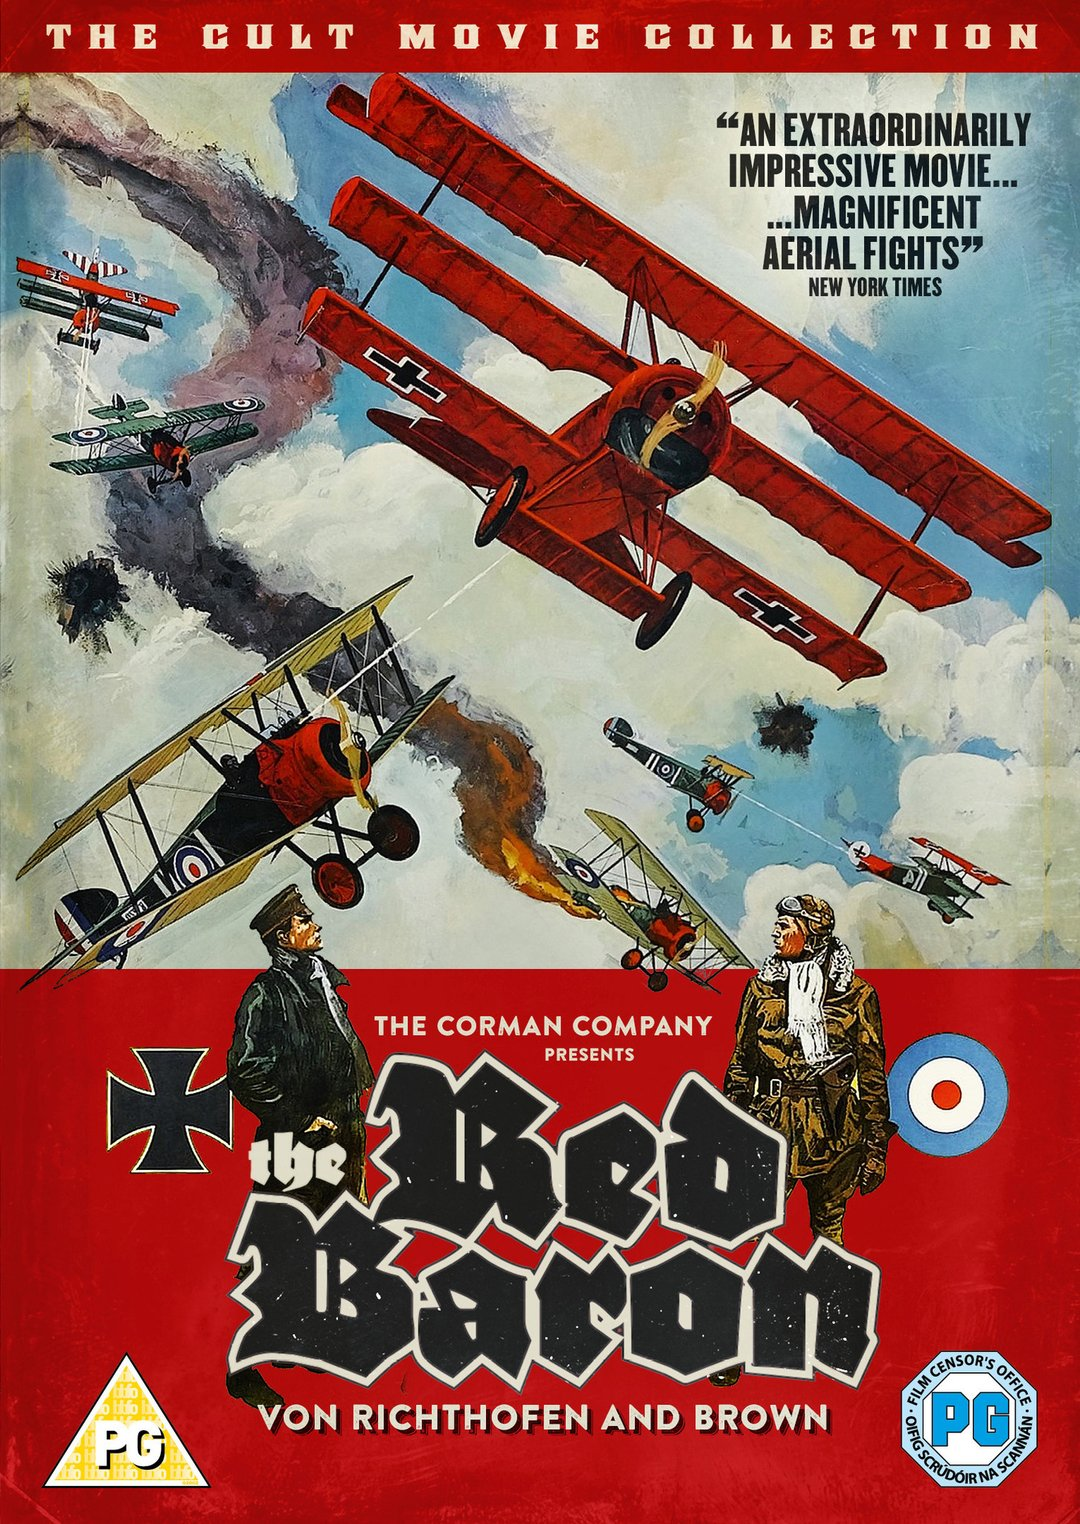 101FILMS077_von_richthofen_and_brown_1080x